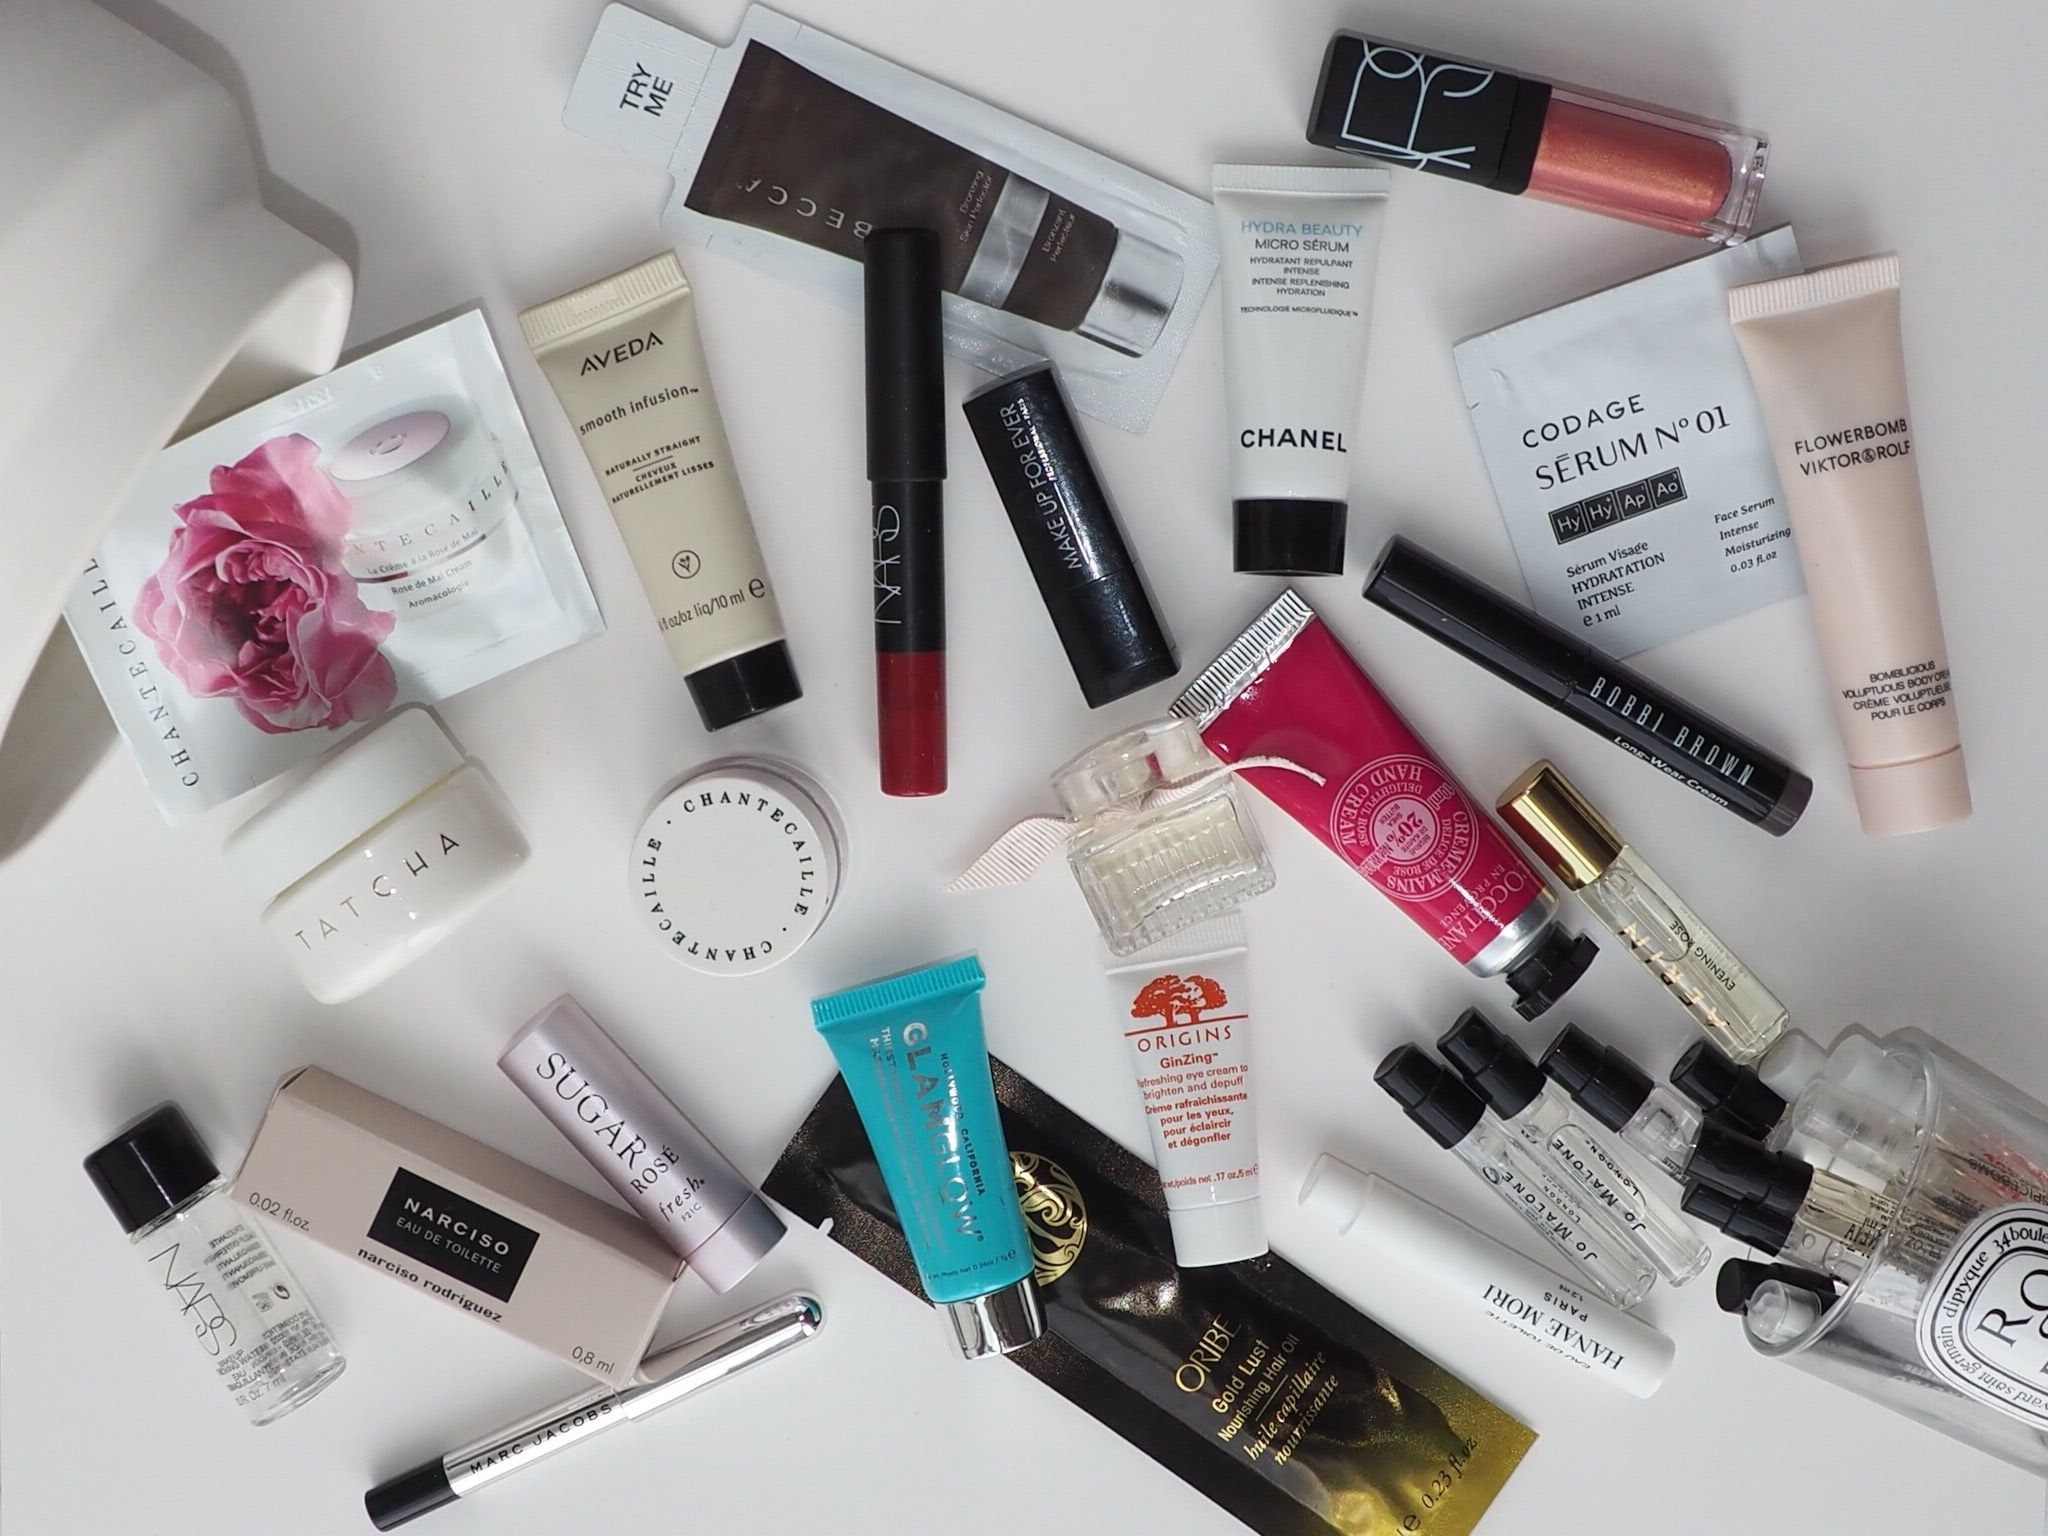 How to get luxury beauty samples in Canada (without buying